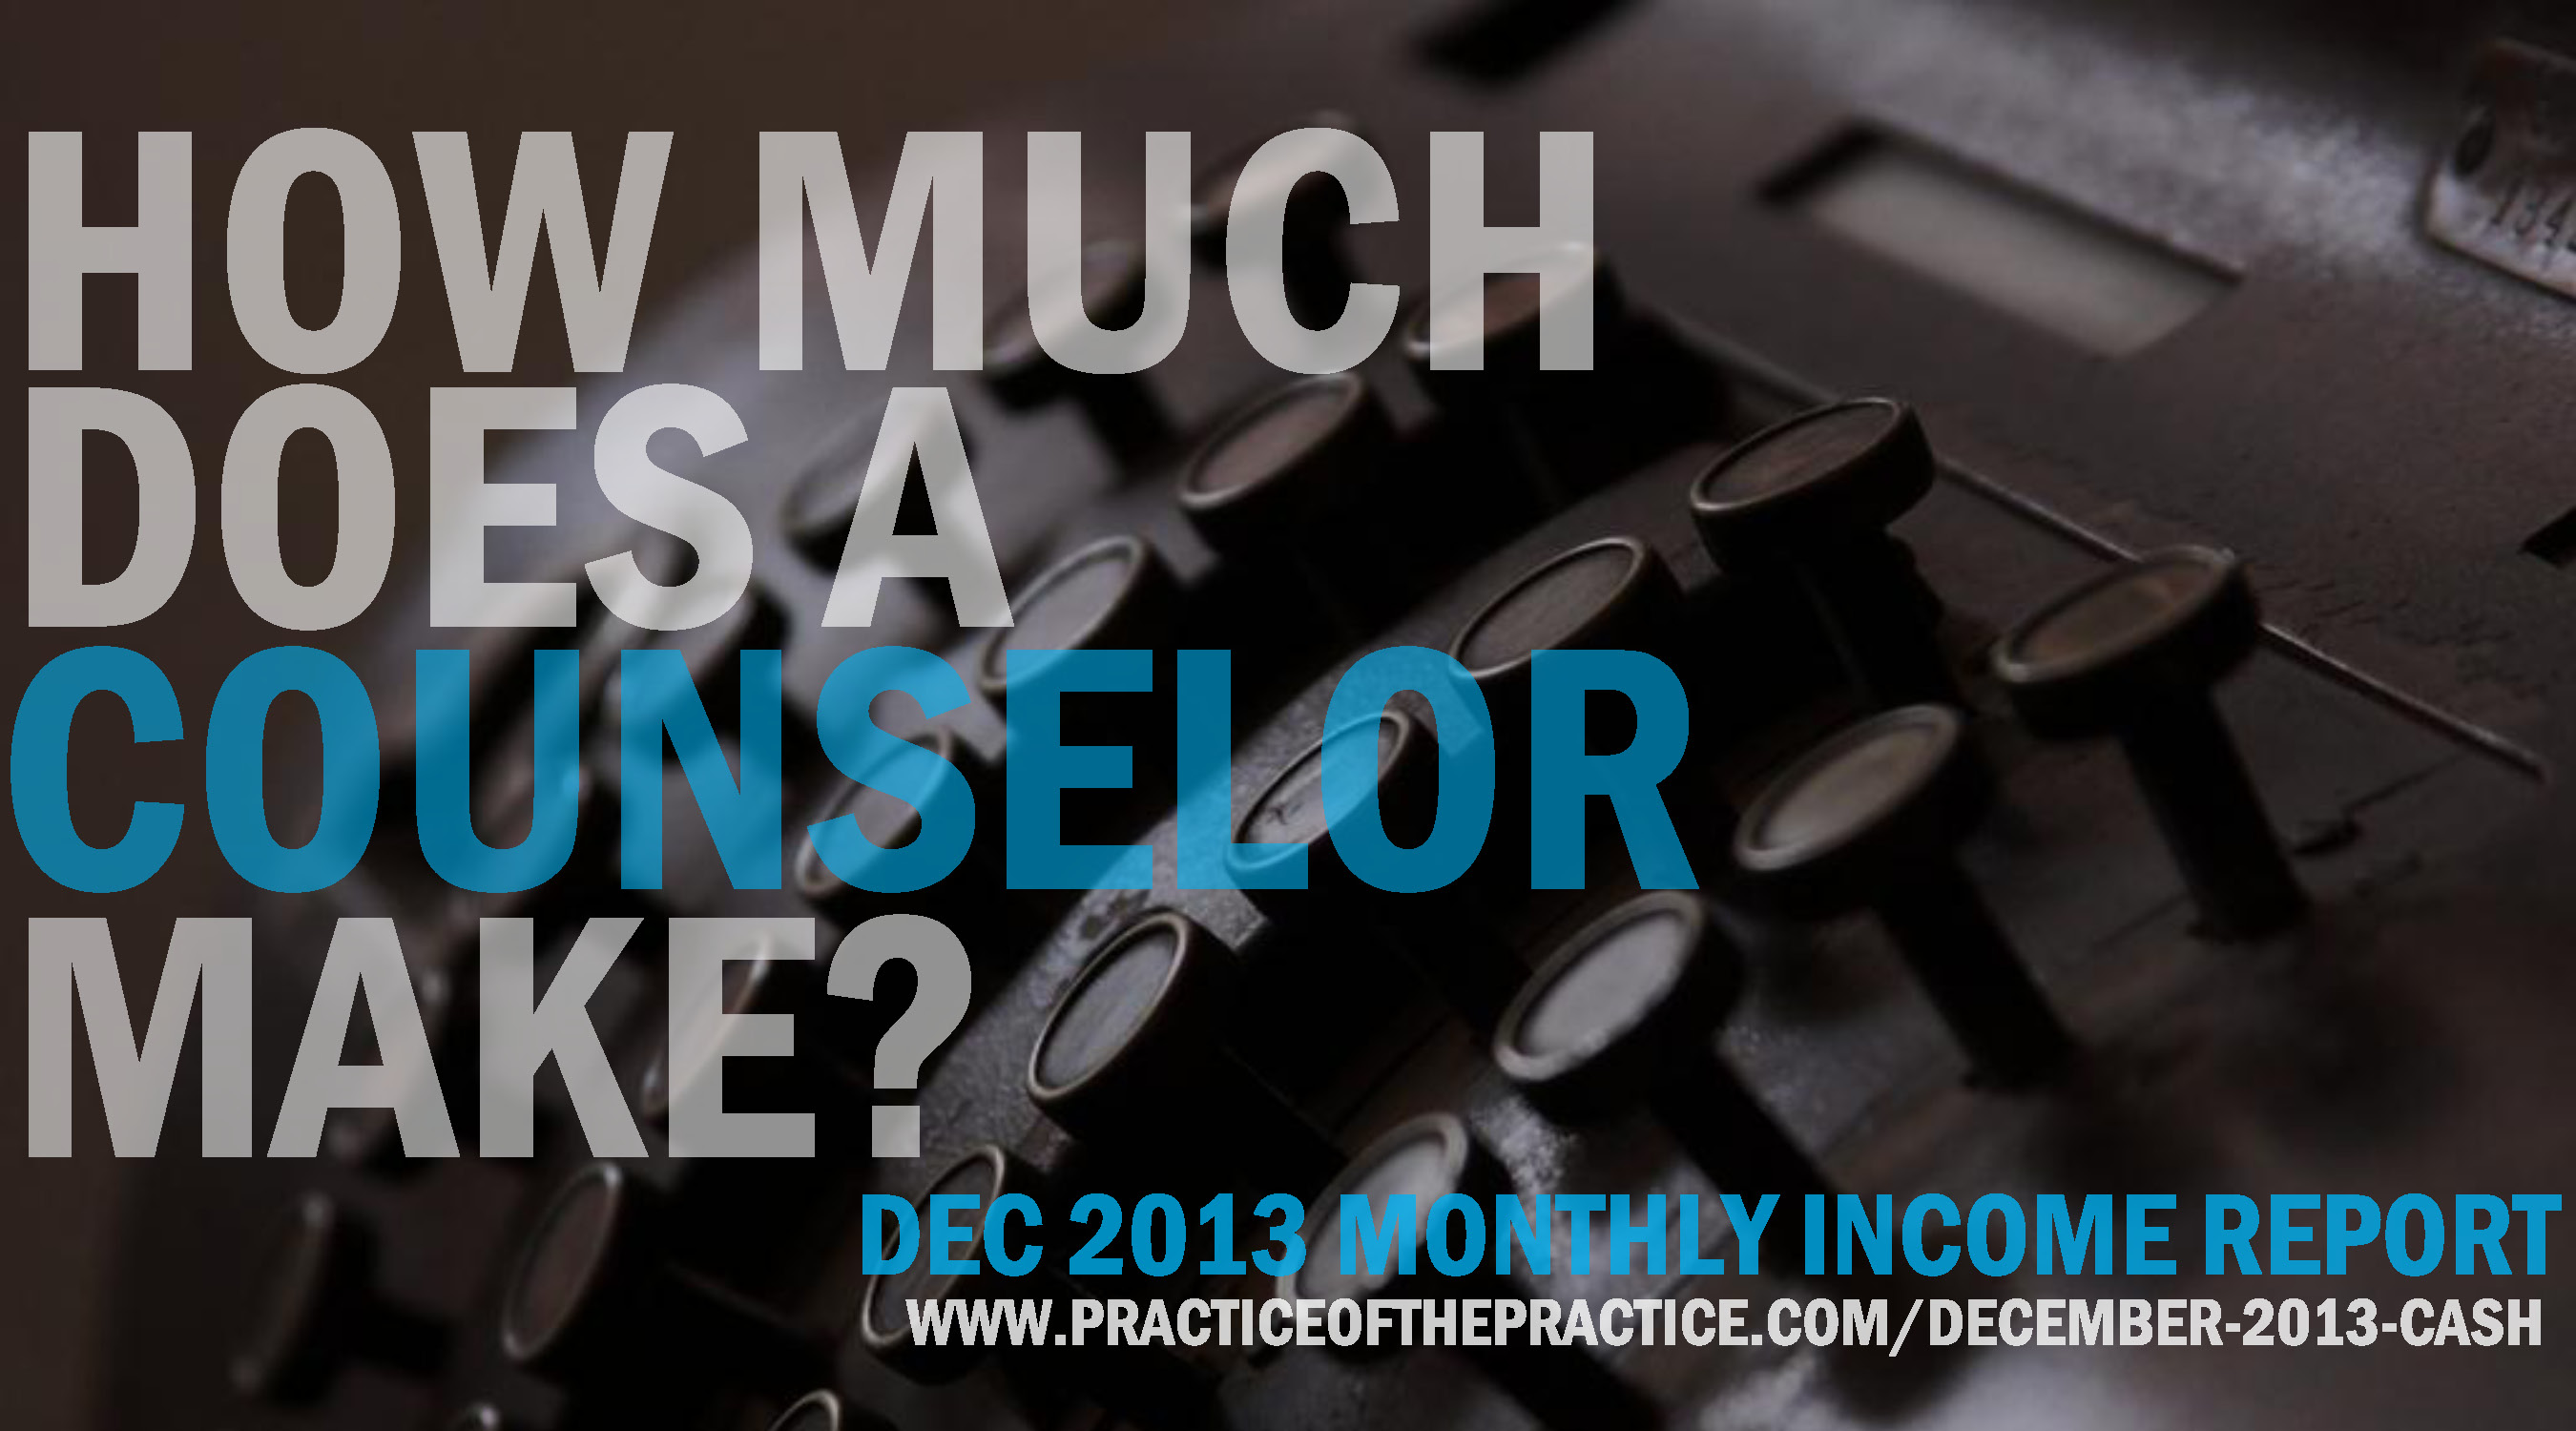 How much does a counselor make?